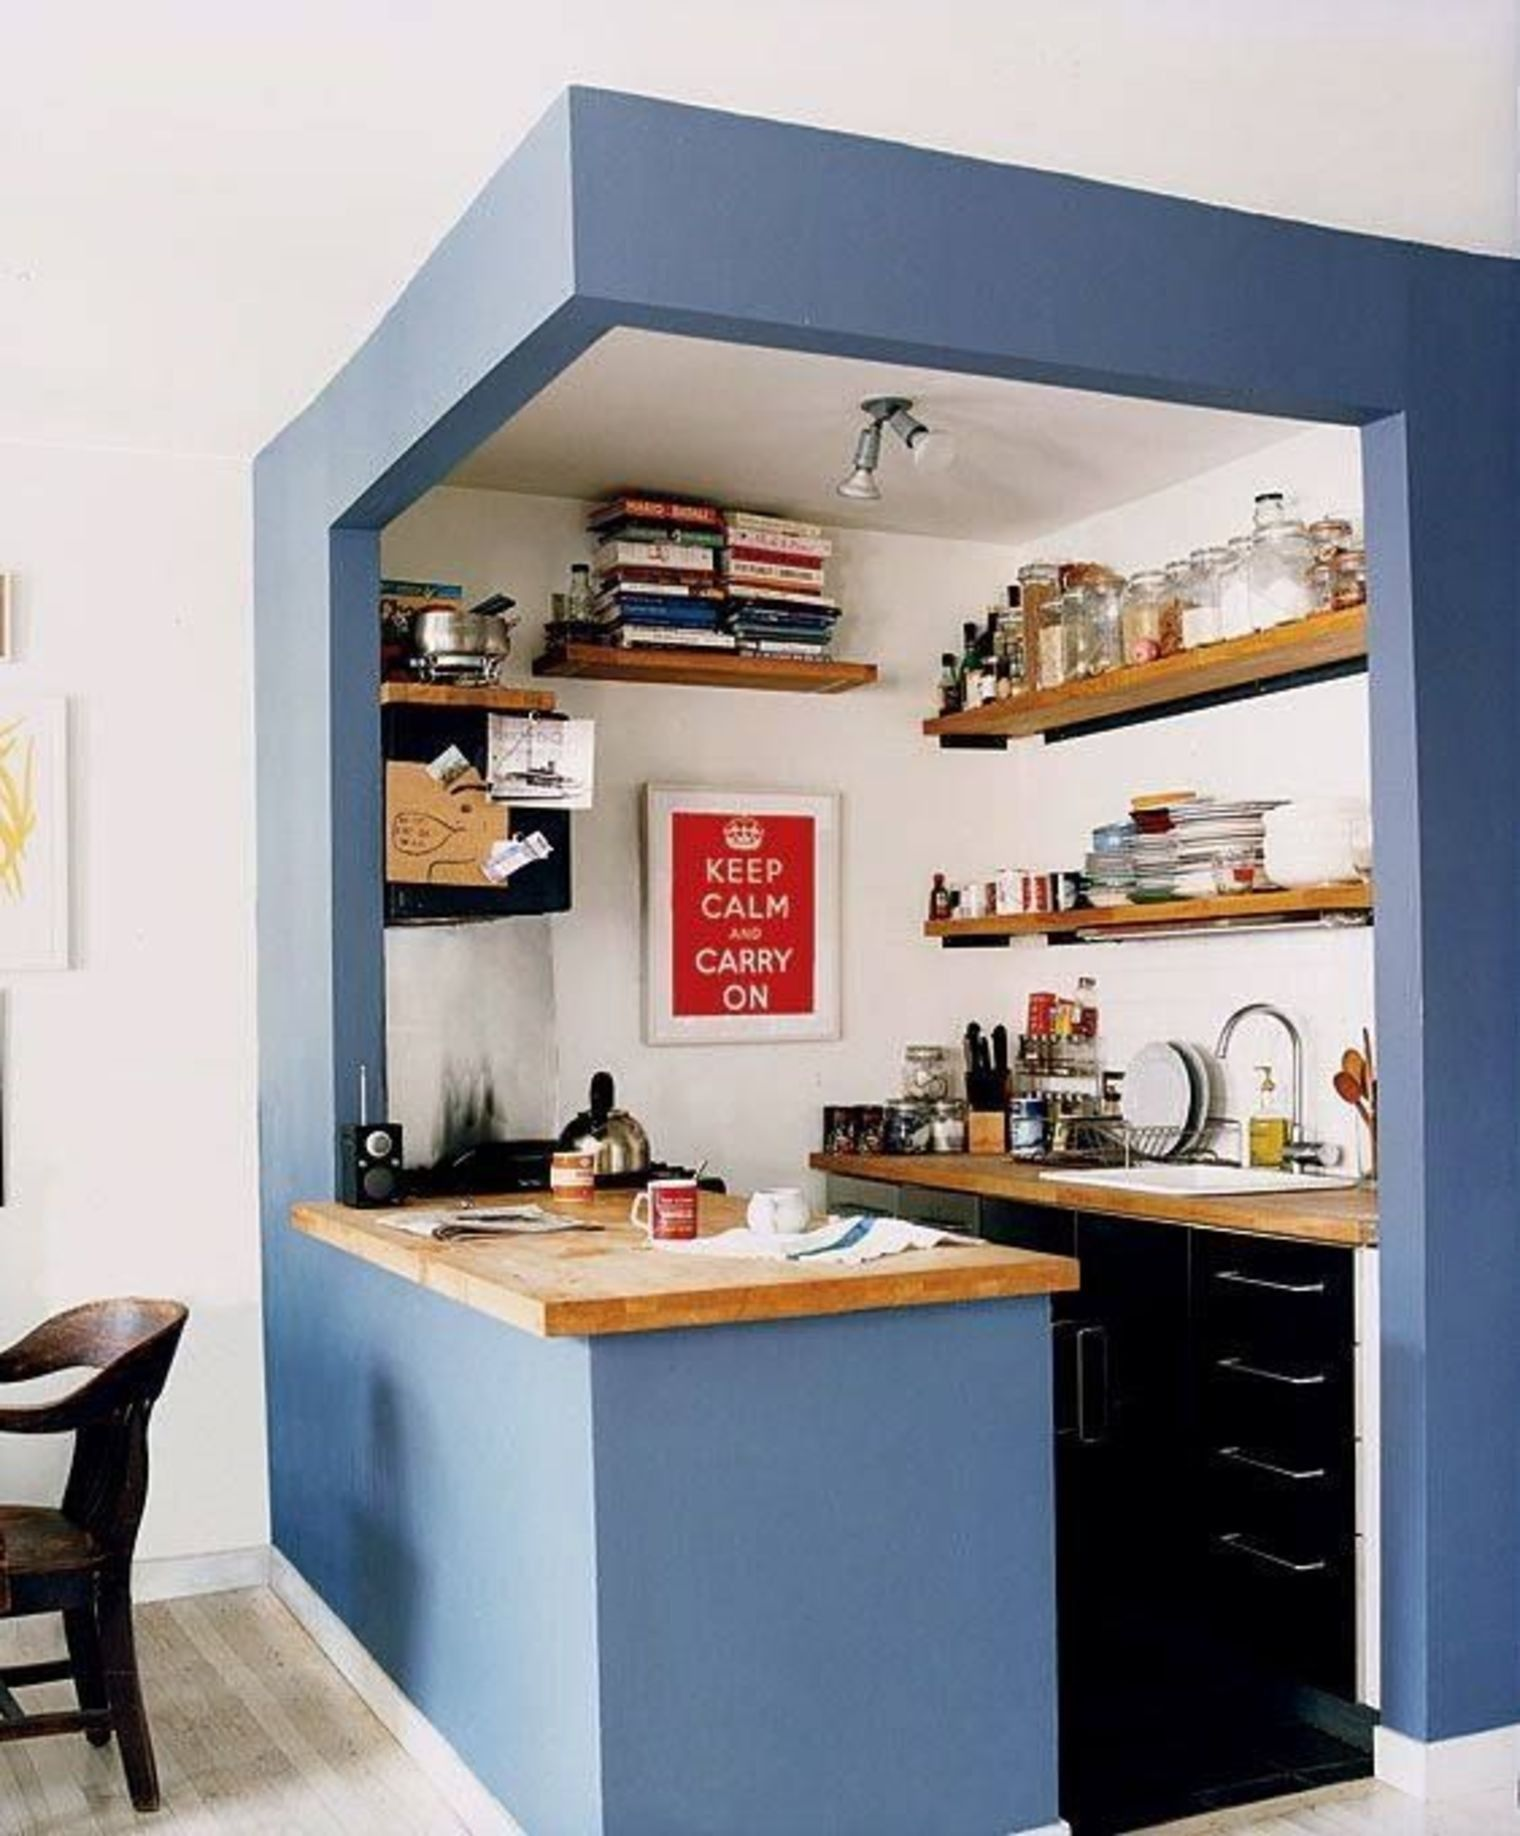 Kitchen Design For Small Space Minimalist And Country Kitchen Design Kitchen Design Small Minimalist Kitchen Design Simple Kitchen Design